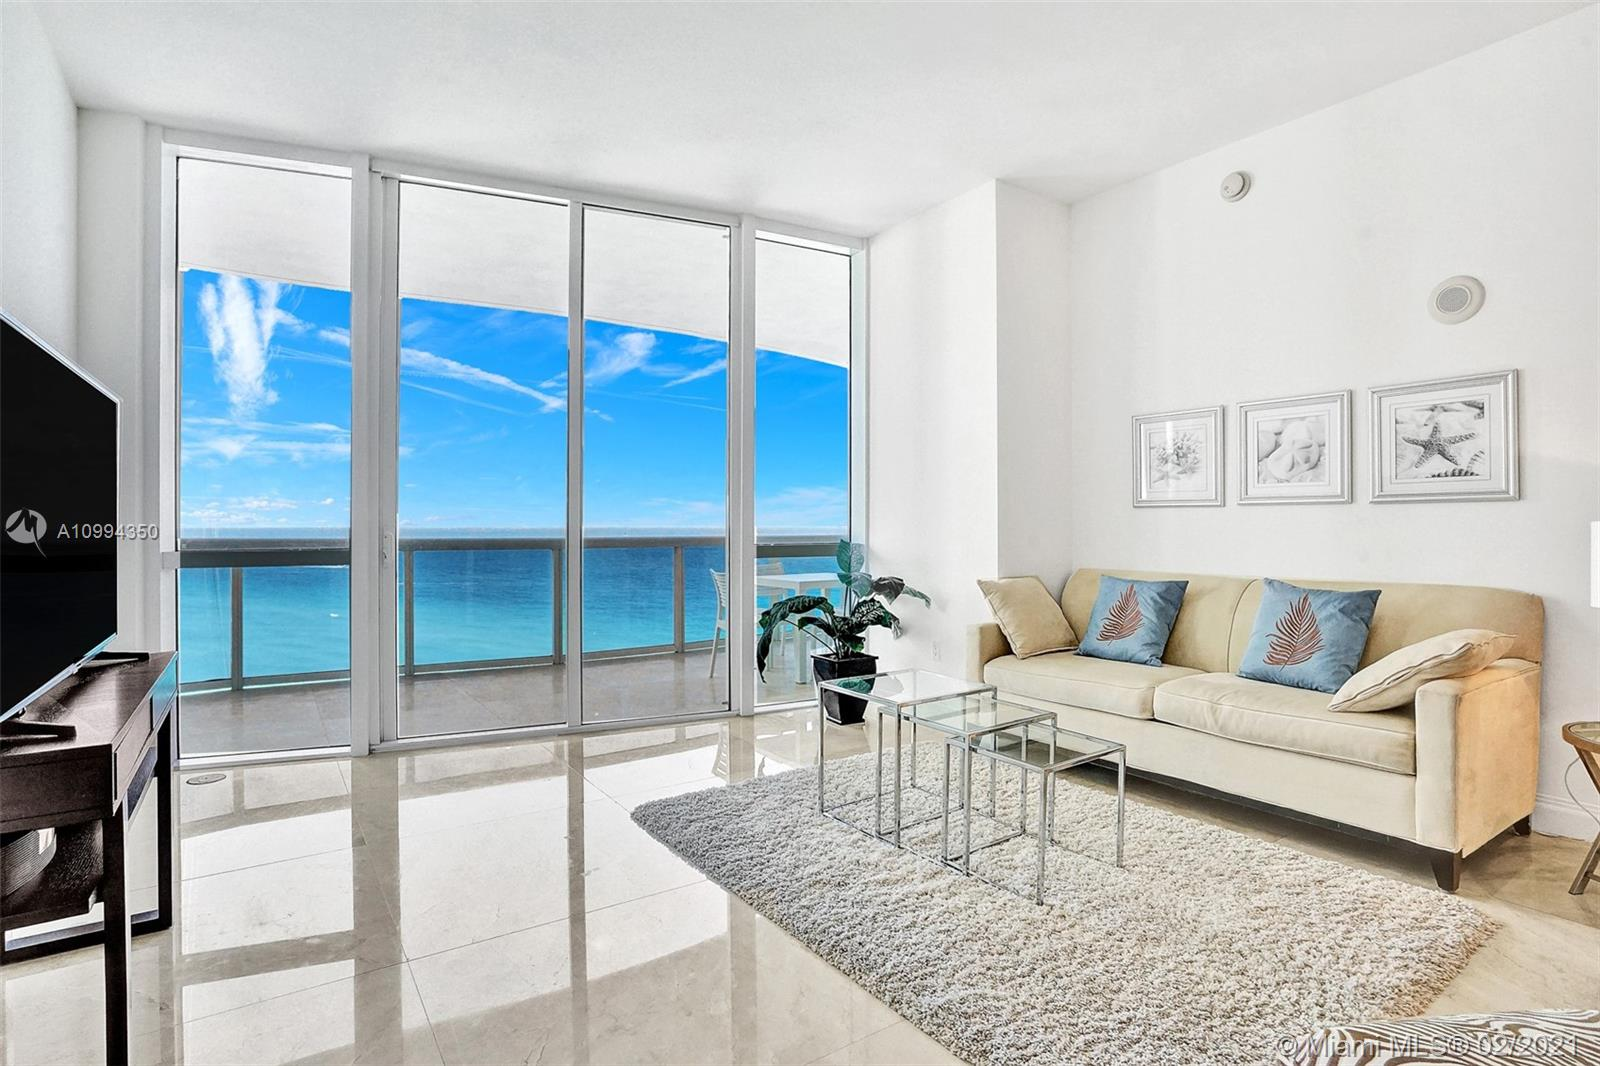 Trump Tower II #1203 - 15901 Collins Ave #1203, Sunny Isles Beach, FL 33160